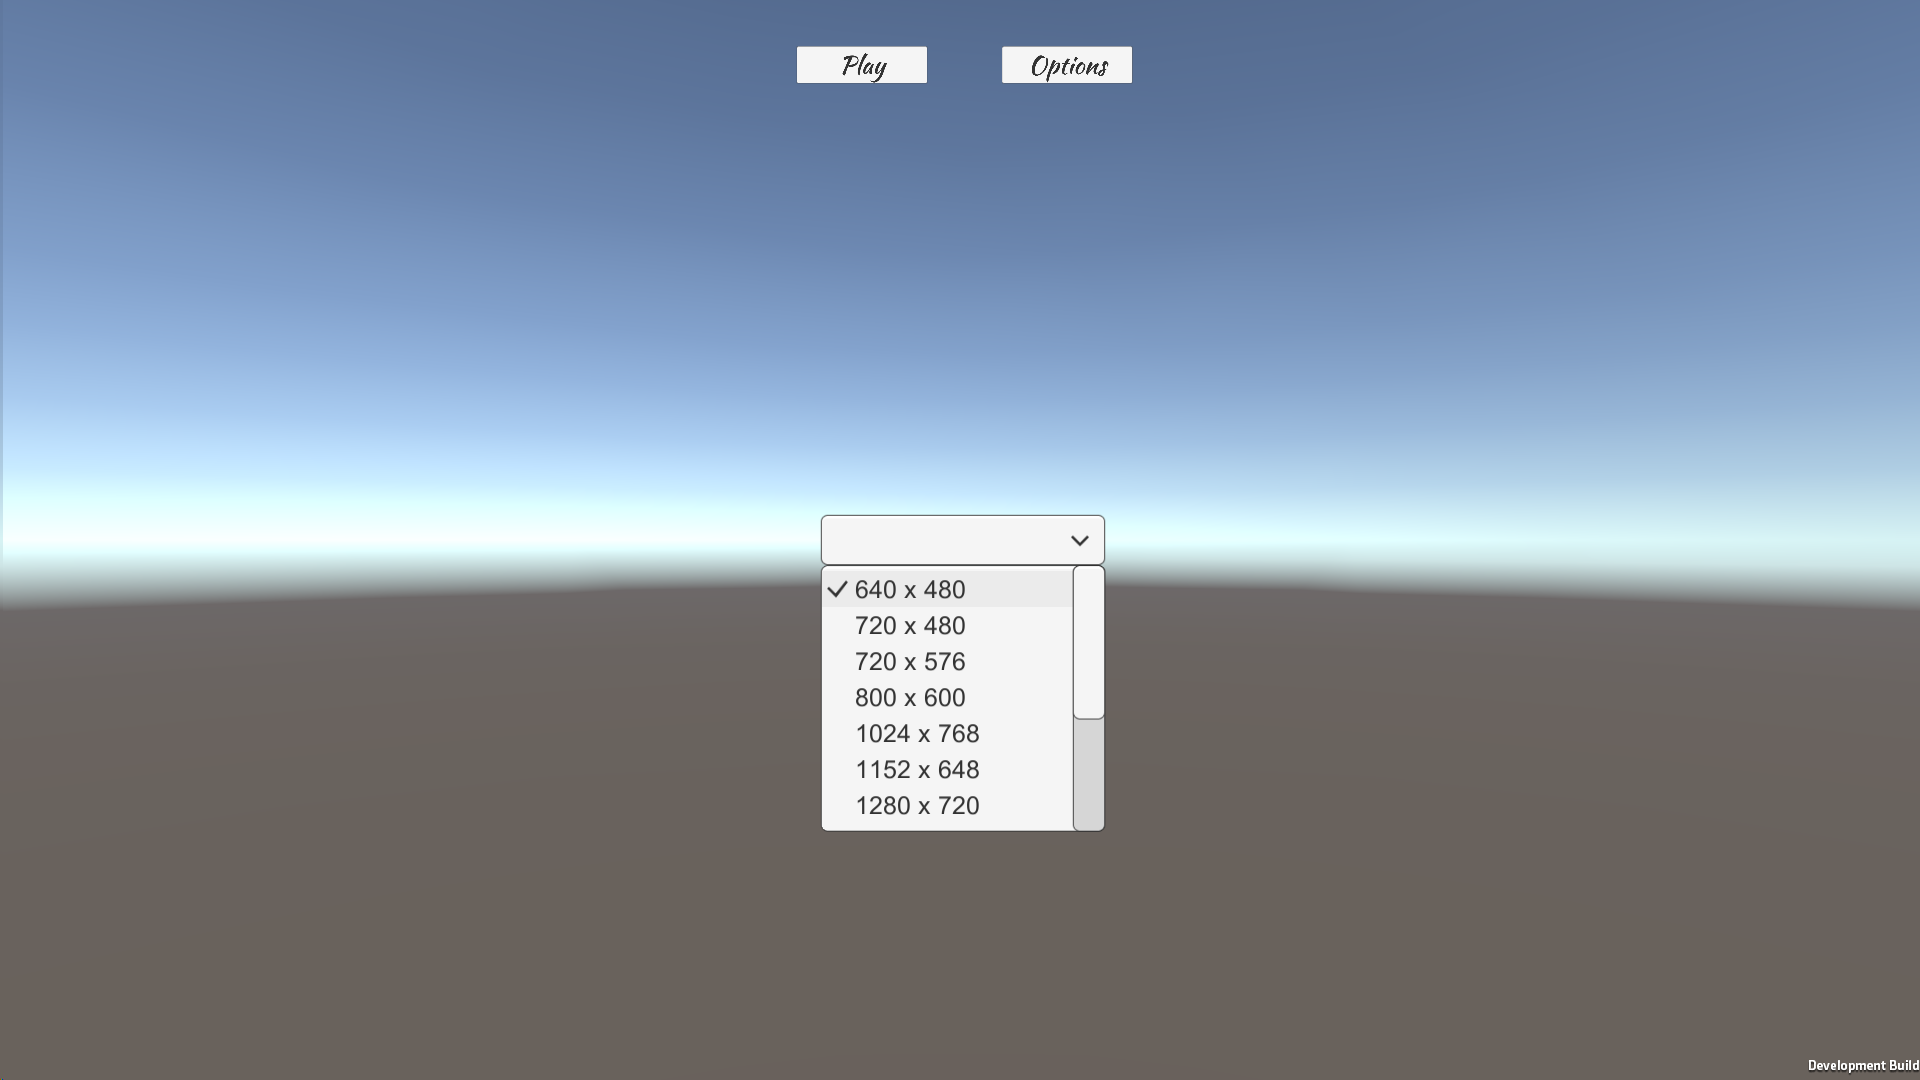 Unity 5 2 using dropdown for screen resolutions - Unity Answers